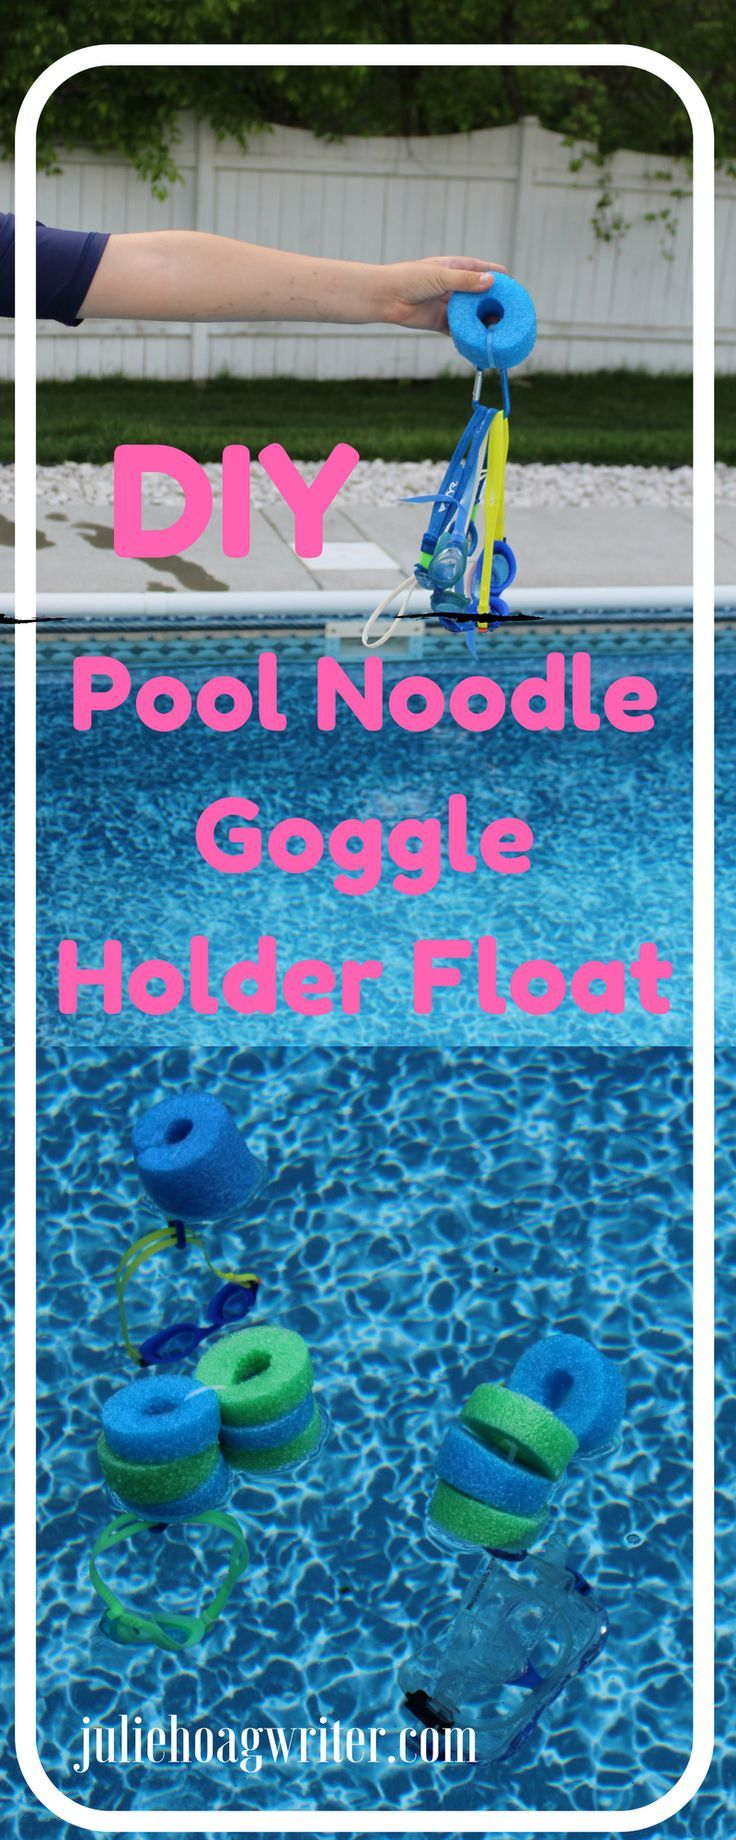 DIY Pool Noodle Goggle Holder Float | family | kids | pool ideas | pools backyard | pool noodle ideas | pool noodle crafts |family fun | kids and family | pool noodles | diy crafts | diy pool ideas | pool time | pool time ideas | swim time | goggles swimming | goggles DIY | pool floats | pool floats for kids | pool floats awesome | swimming | affiliate | lake swimming | summer fun | summer fun ideas | summer crafts kids